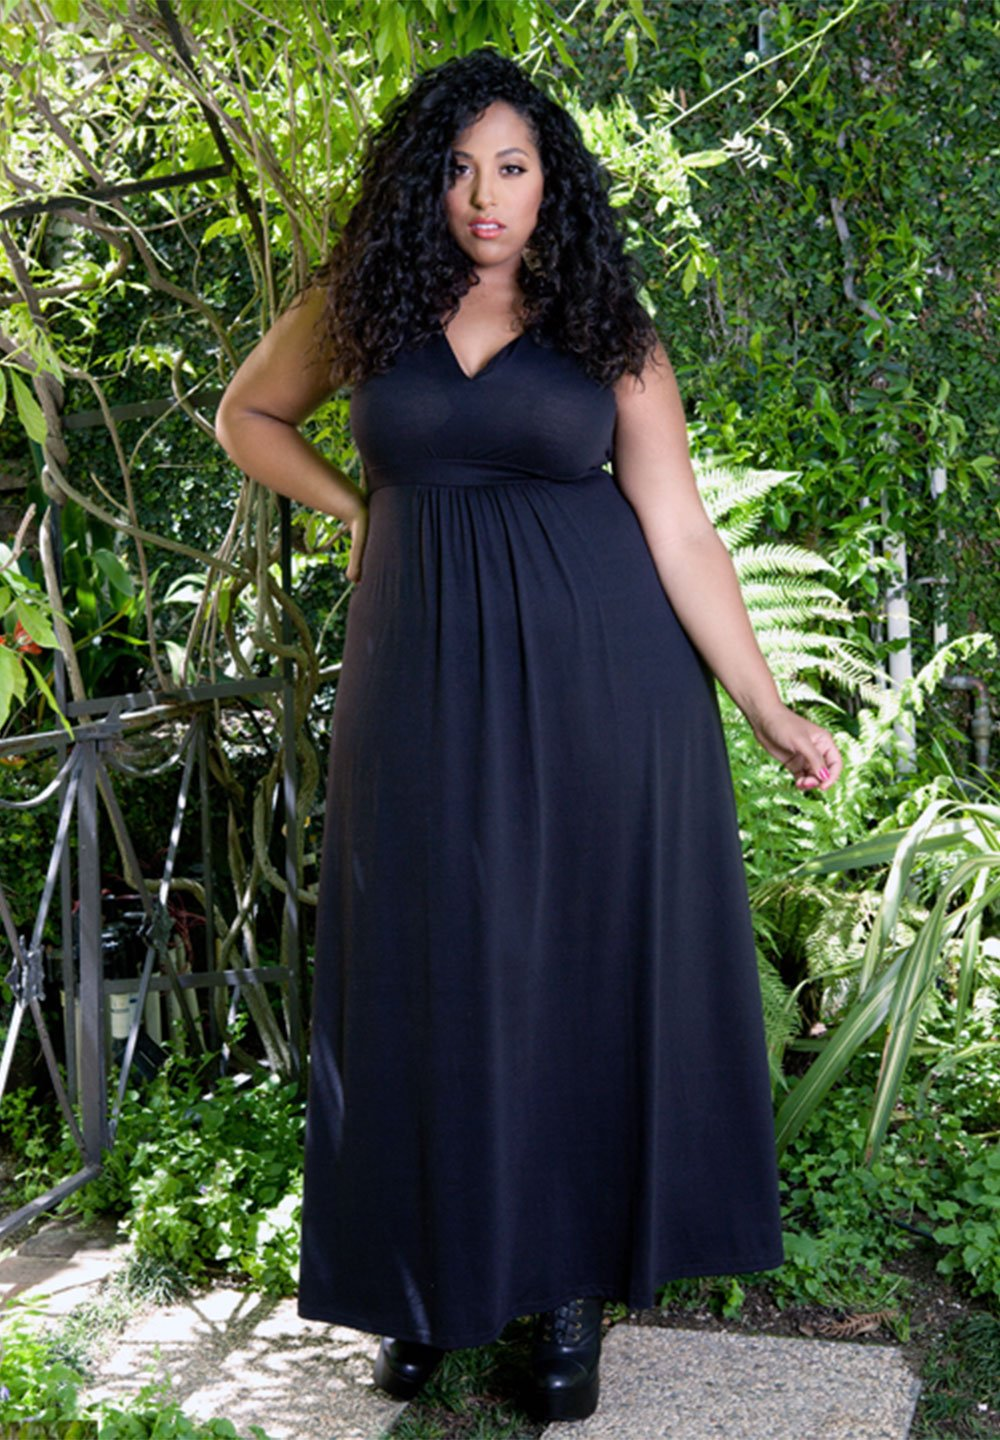 New Plus Size Sleeveless Classic Black Maxi Cocktail Evening Dress 1X-6X - Junkdrawercoolfinds.com